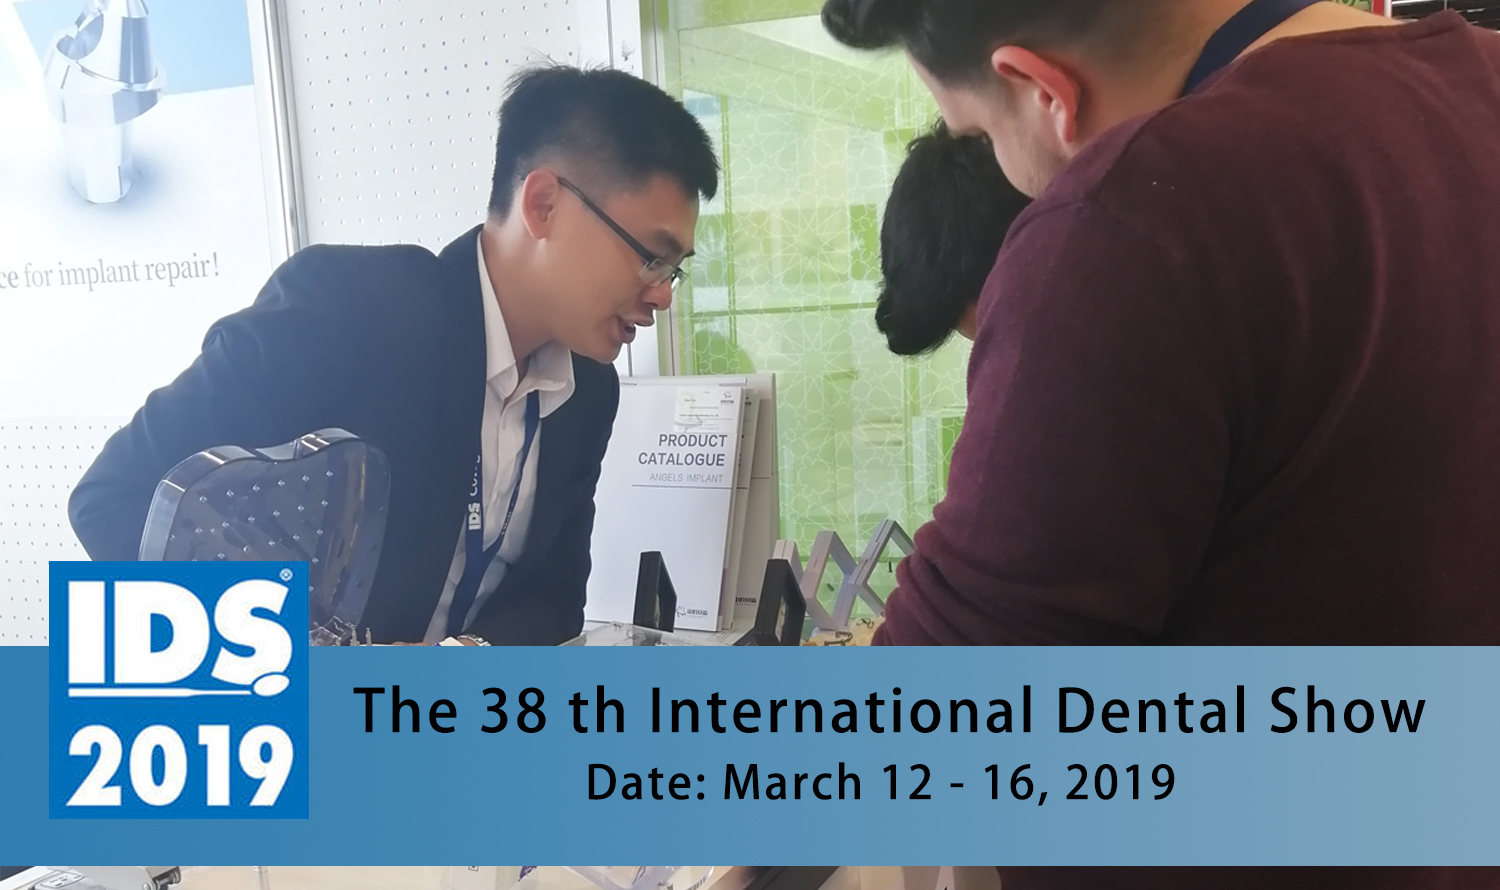 The 38th International Dental Show (IDS) in Cologne, Germany